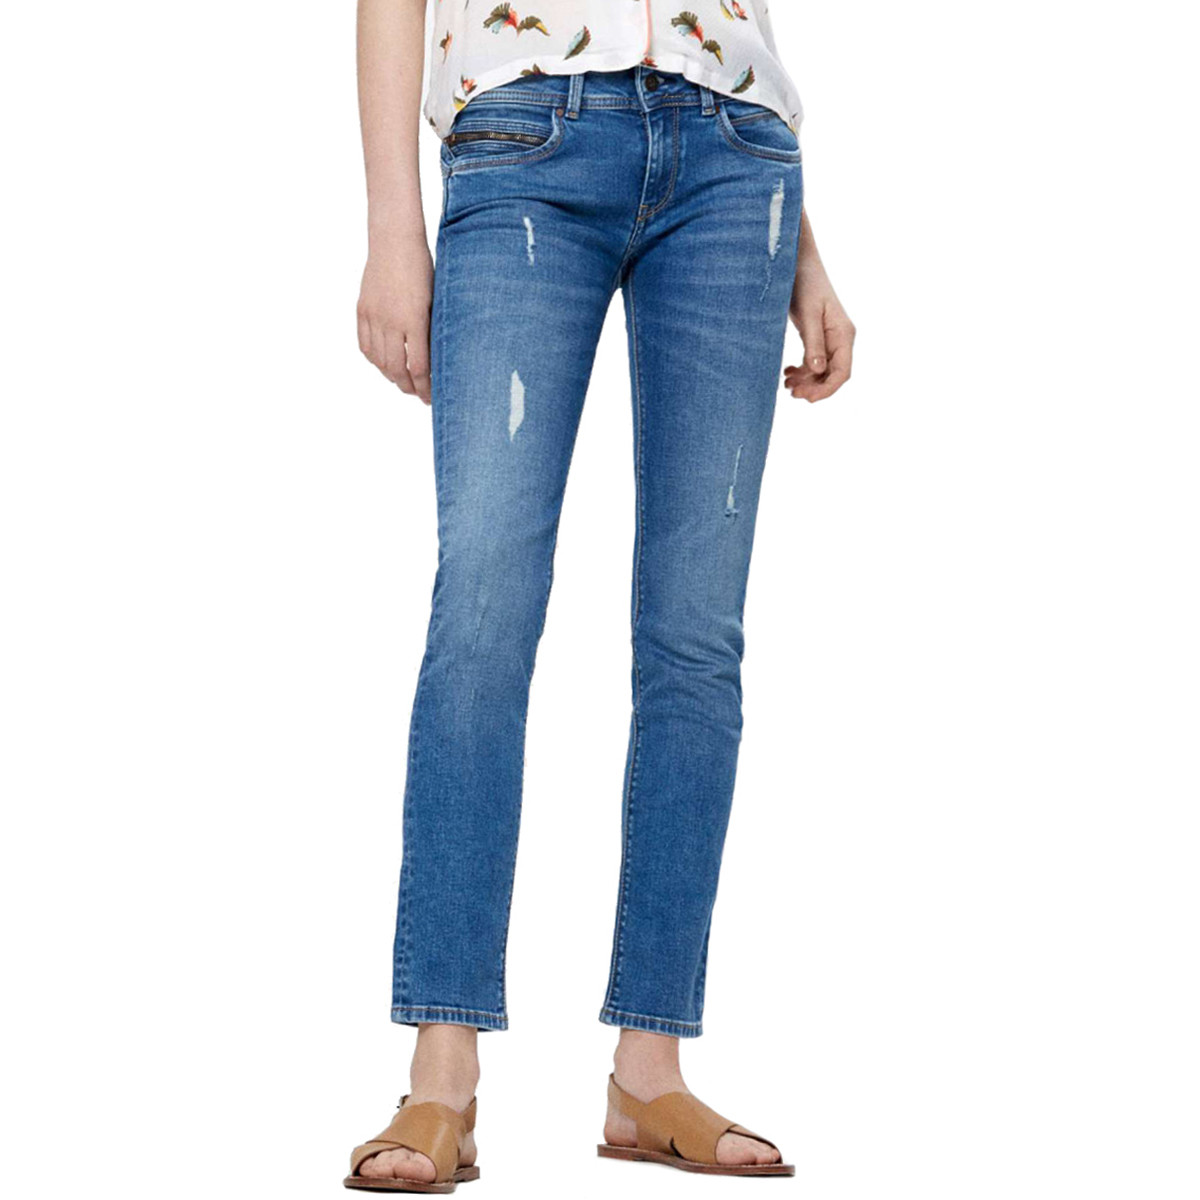 32 Wfq7i Longueur Jean Bleu New Femme Pepe Pas Brooke Cher Jeans vnwESWnfYq